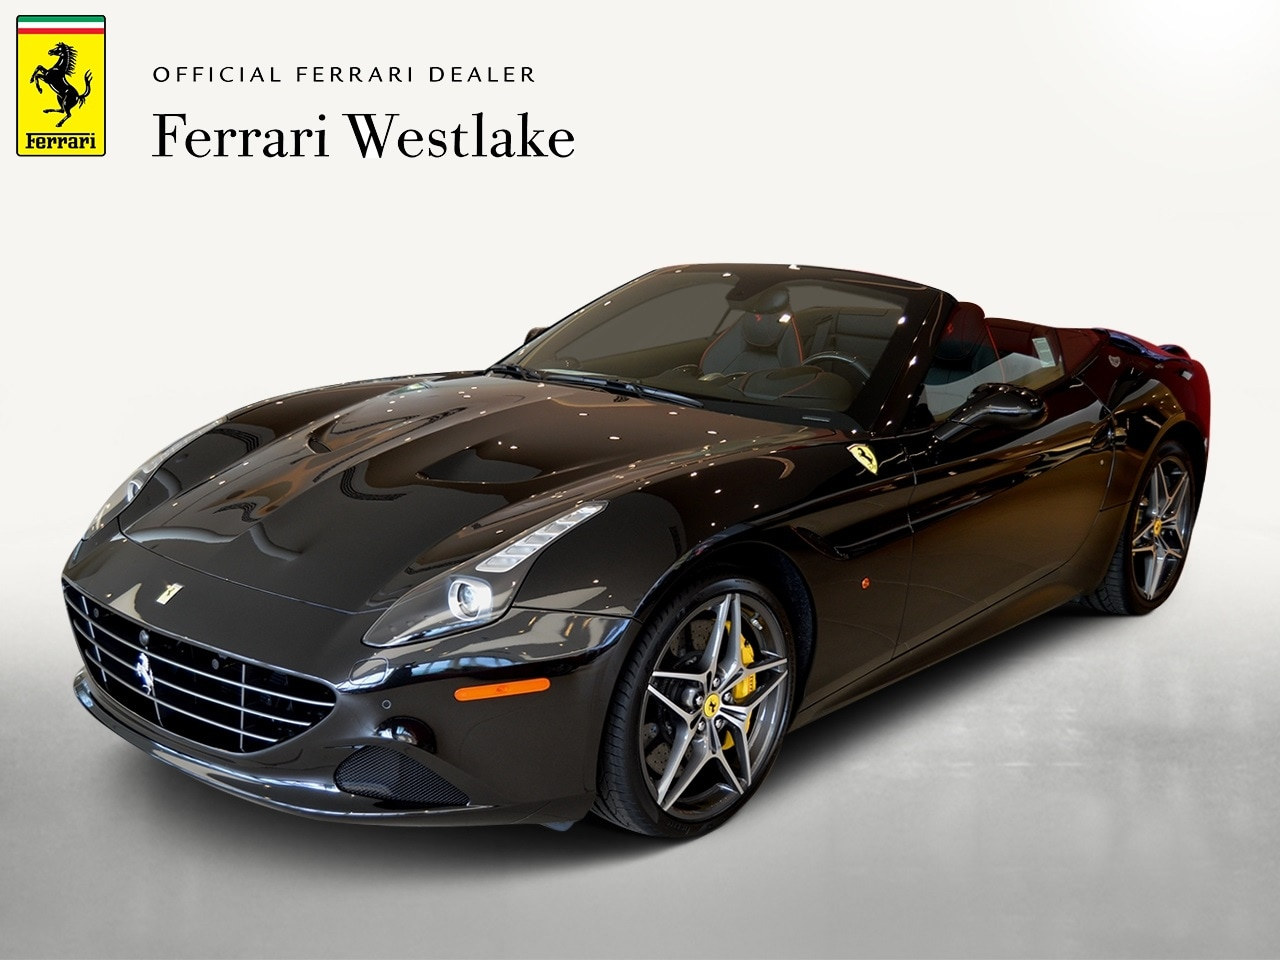 Certified Pre-Owned 2016 Ferrari California T HS Convertible For Sale Torrance, California